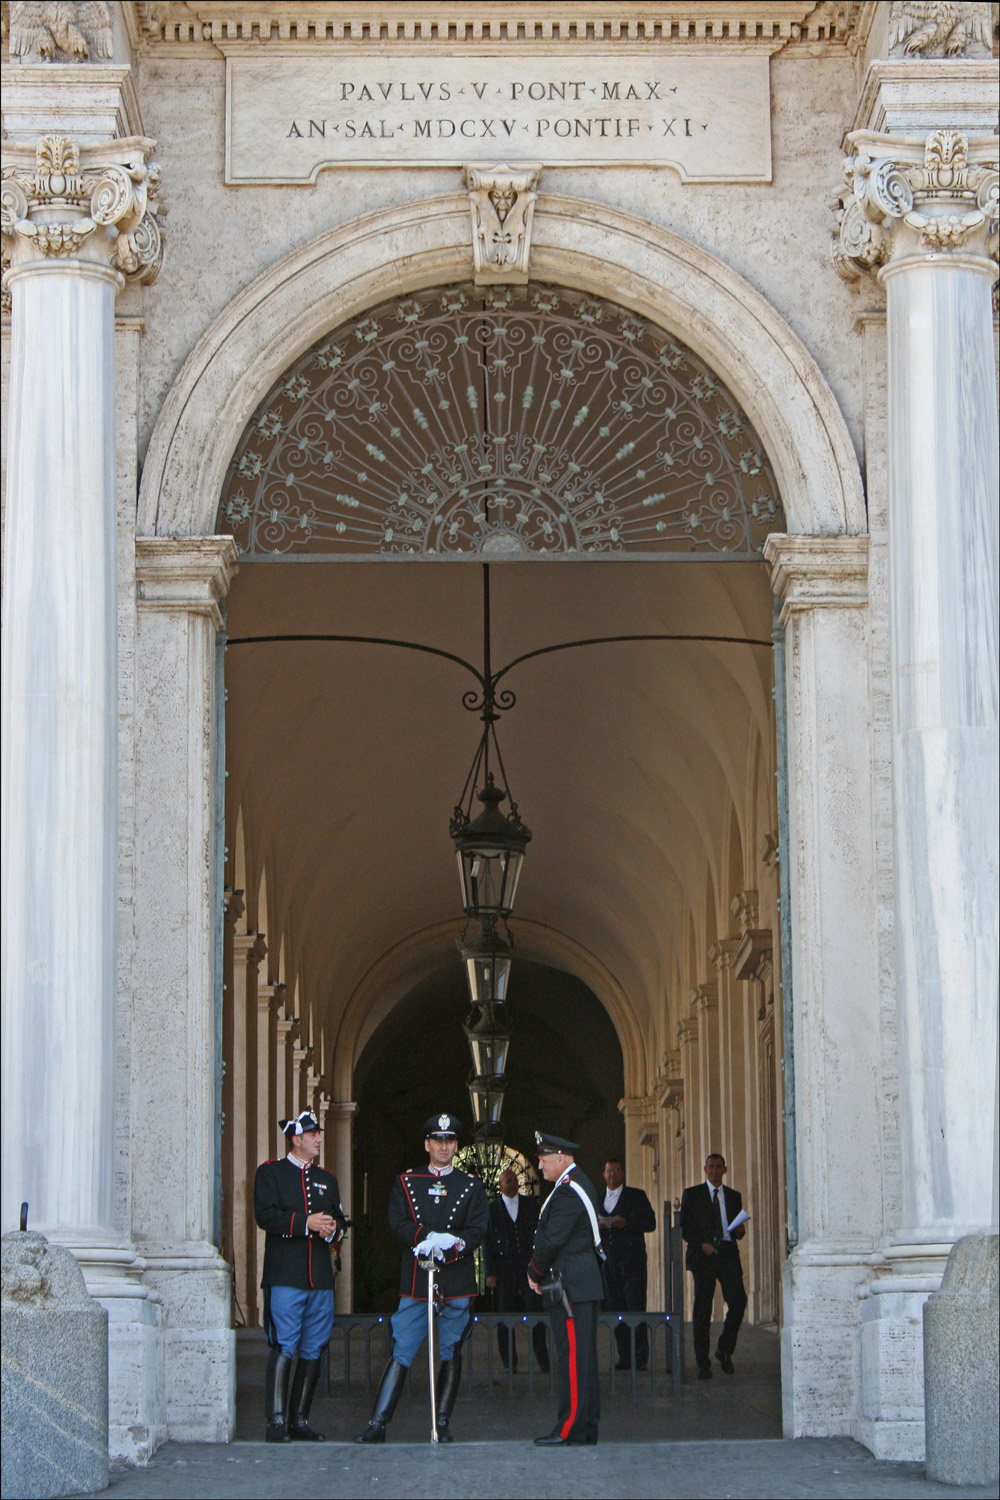 Entrance to Palazzo del Quirinale